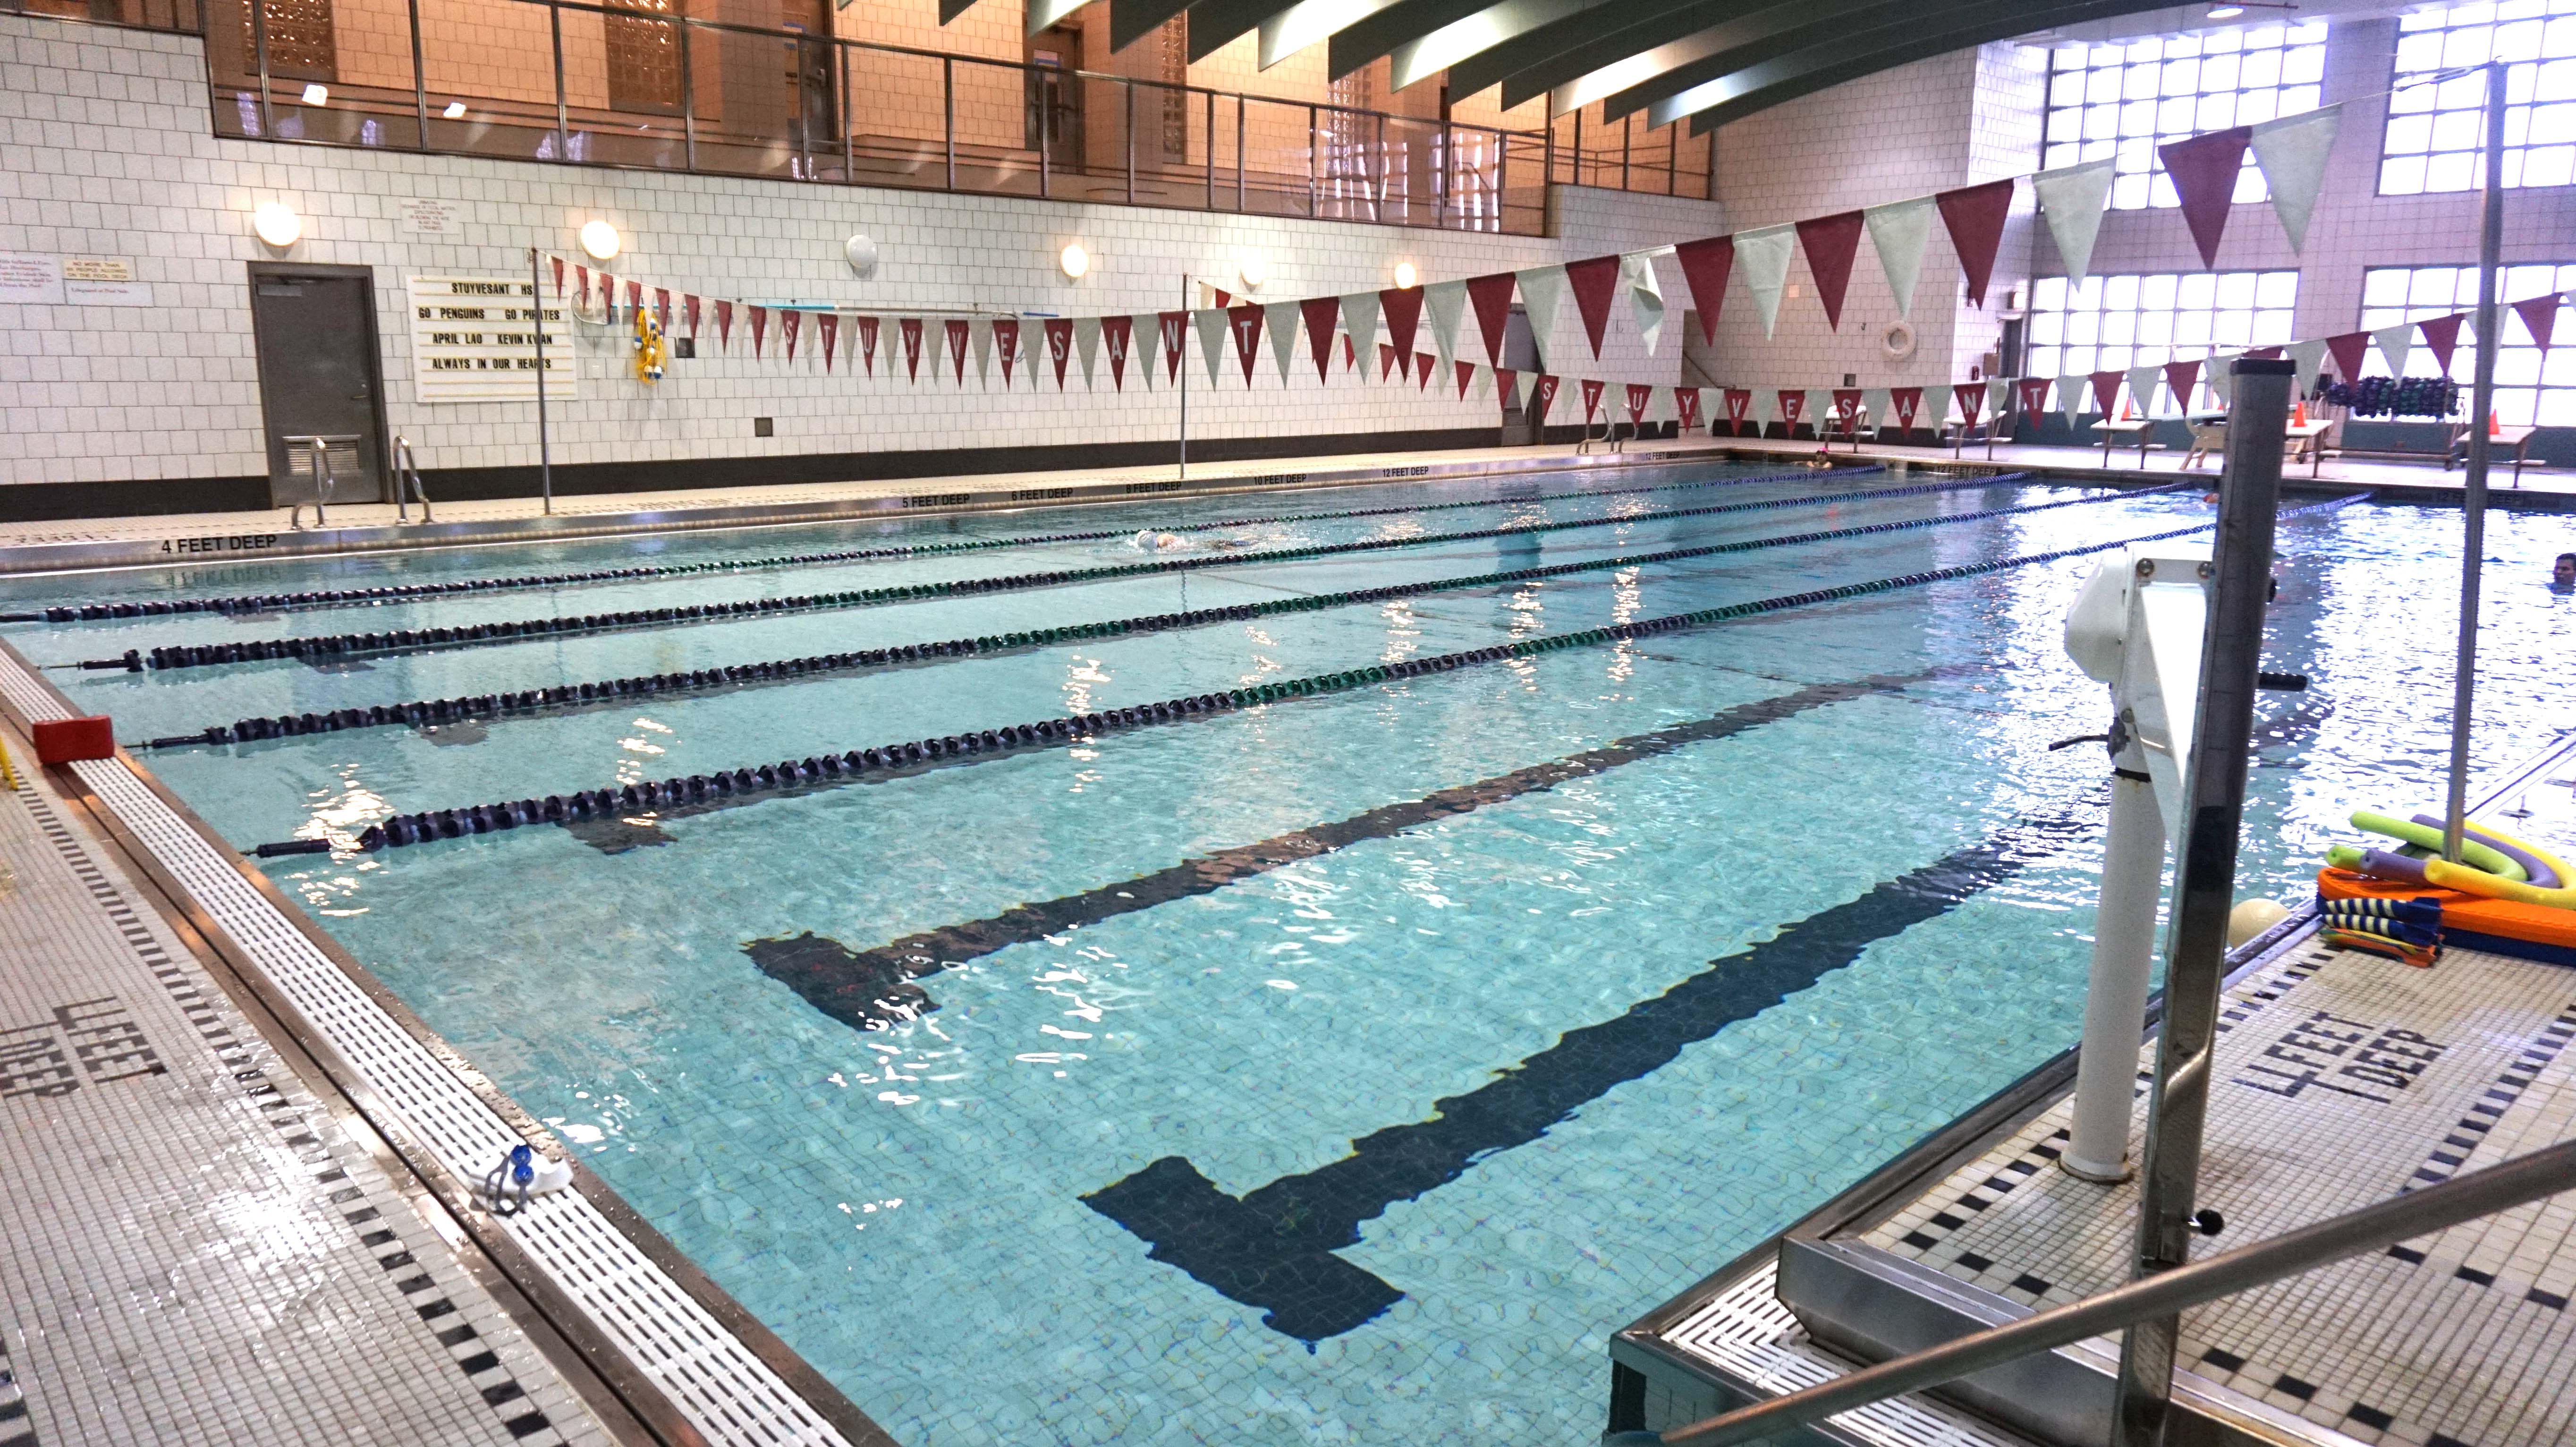 Stuyvesant pool level